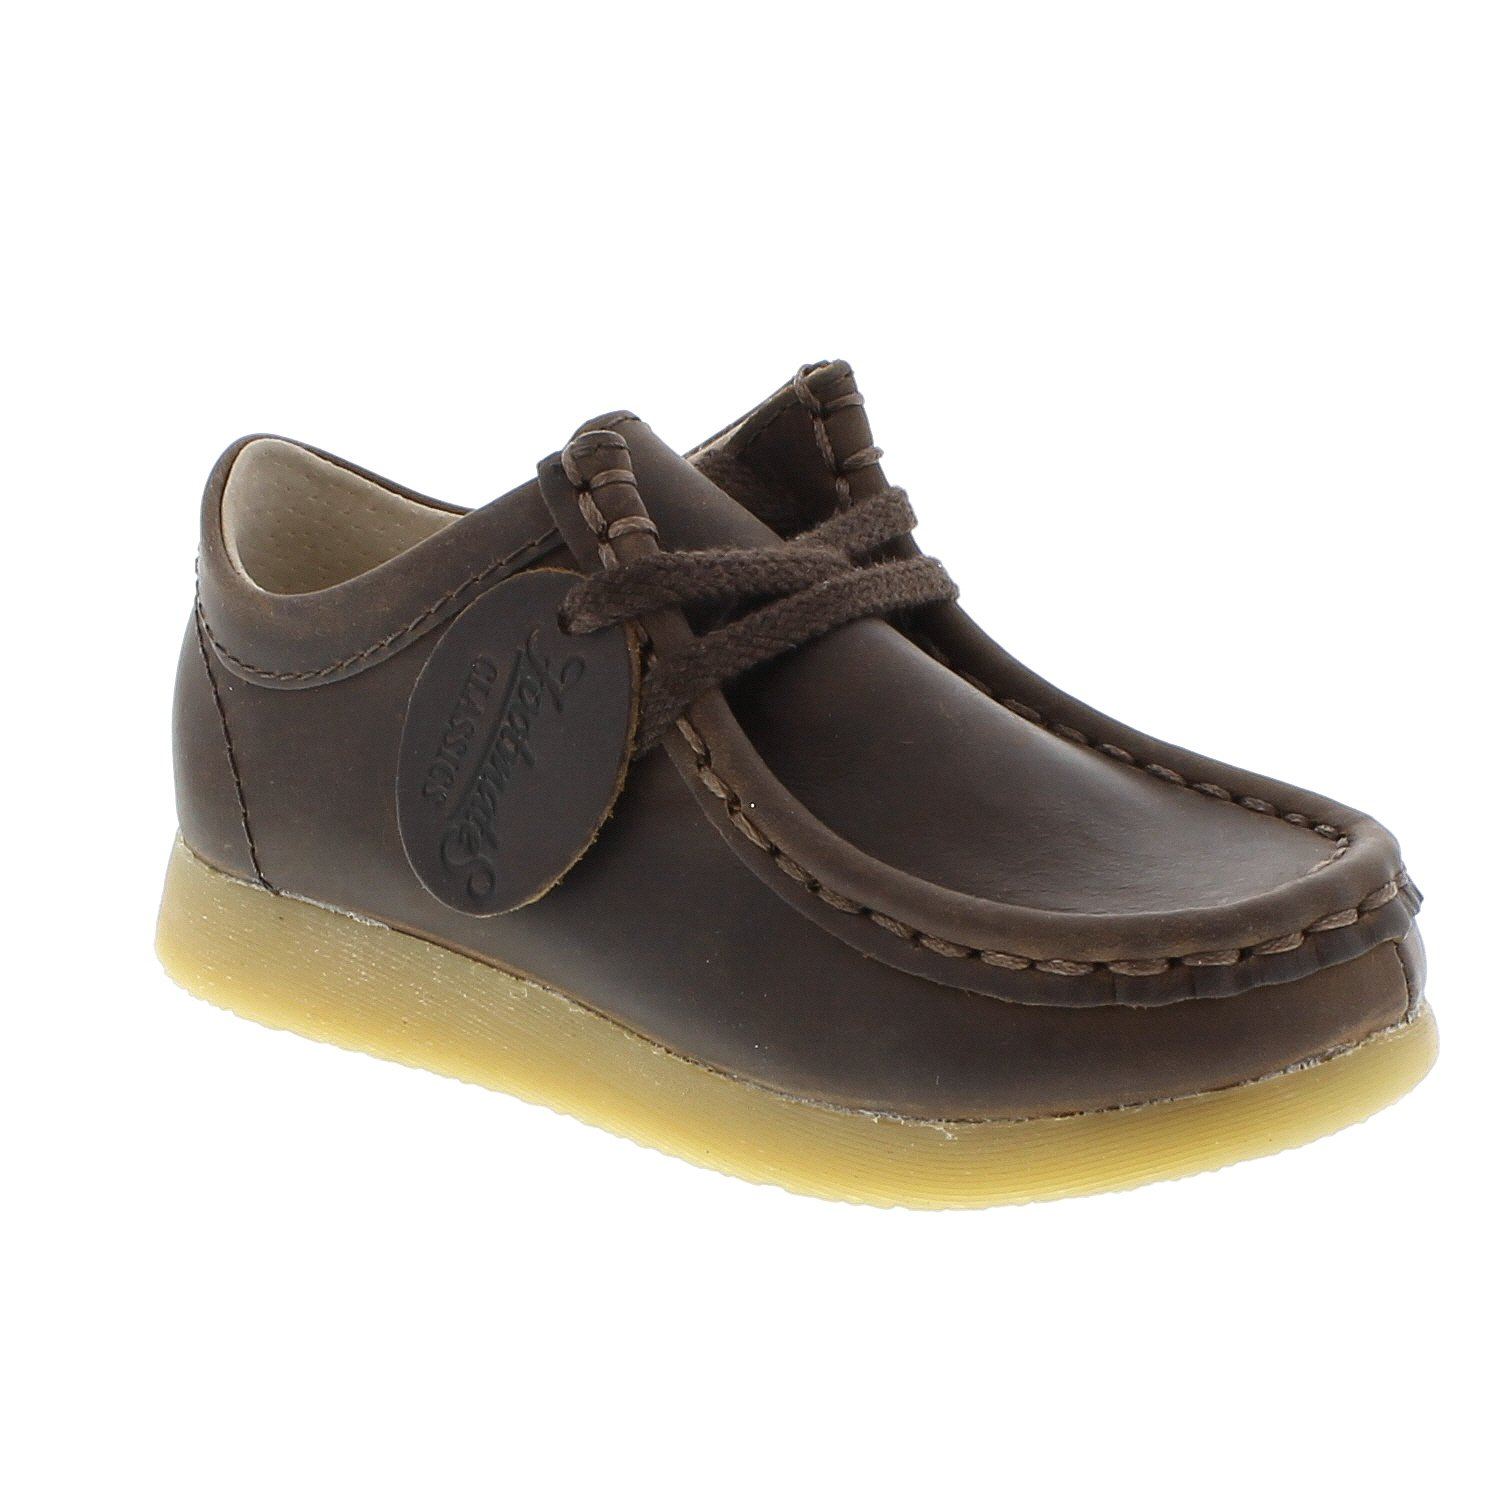 FOOTMATES Wally Low Wallabee Oxford Brown Oiled - 9125/12.5 Little Kid M/W by FOOTMATES (Image #3)